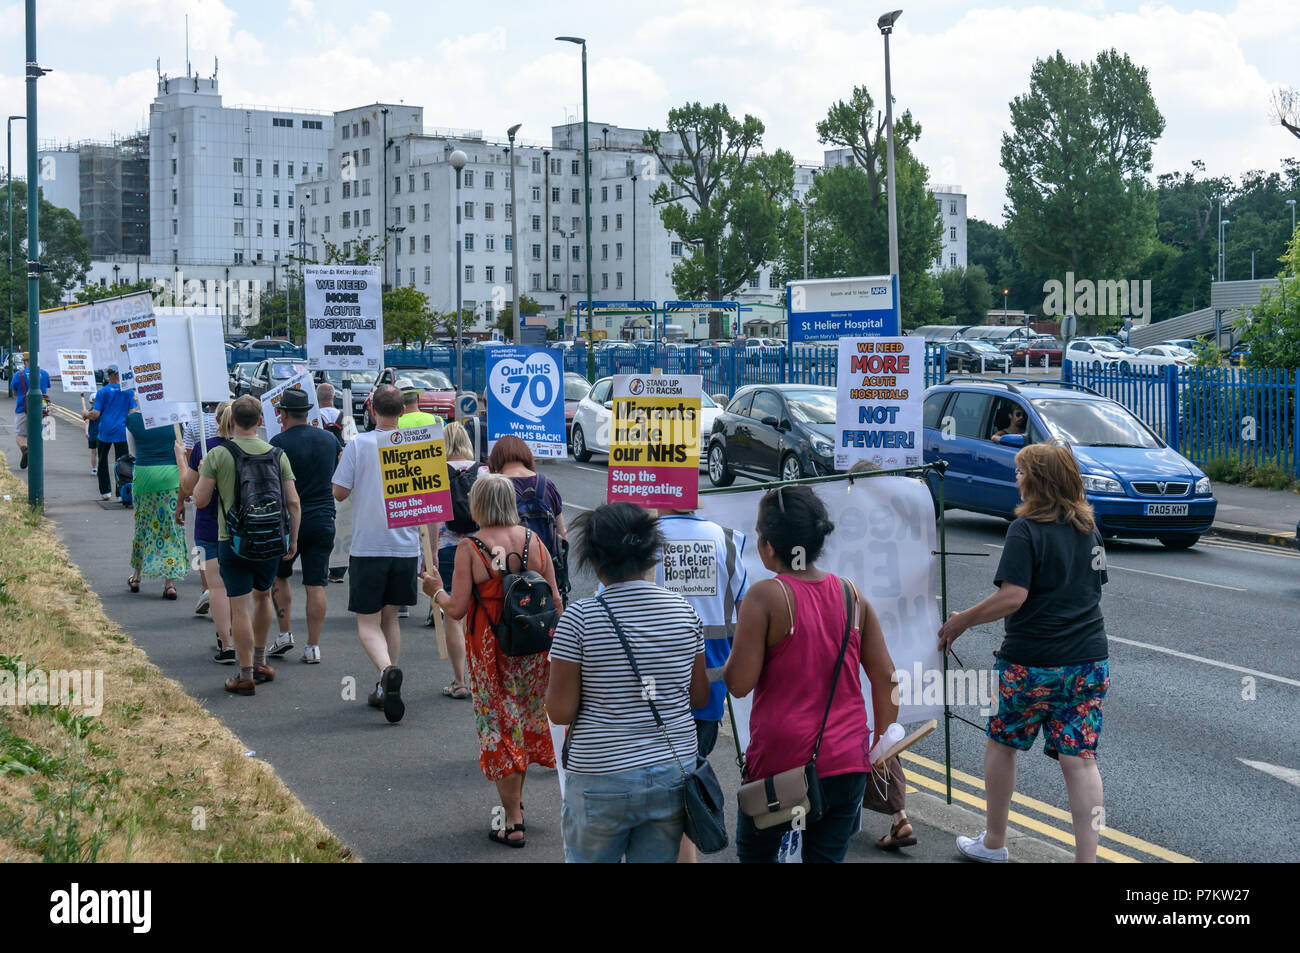 London, UK. 7th July 2018. Keep Our St Helier Hospital (KOSHH) campaigners against the closure of acute facilities at Epsom and St Helier Hospitals in south London celebrating the 70th Birthday of the NHS with a march from Sutton arrive at St Helier Hospital for a rally.   he of so Credit: Peter Marshall/Alamy Live NewsStock Photo